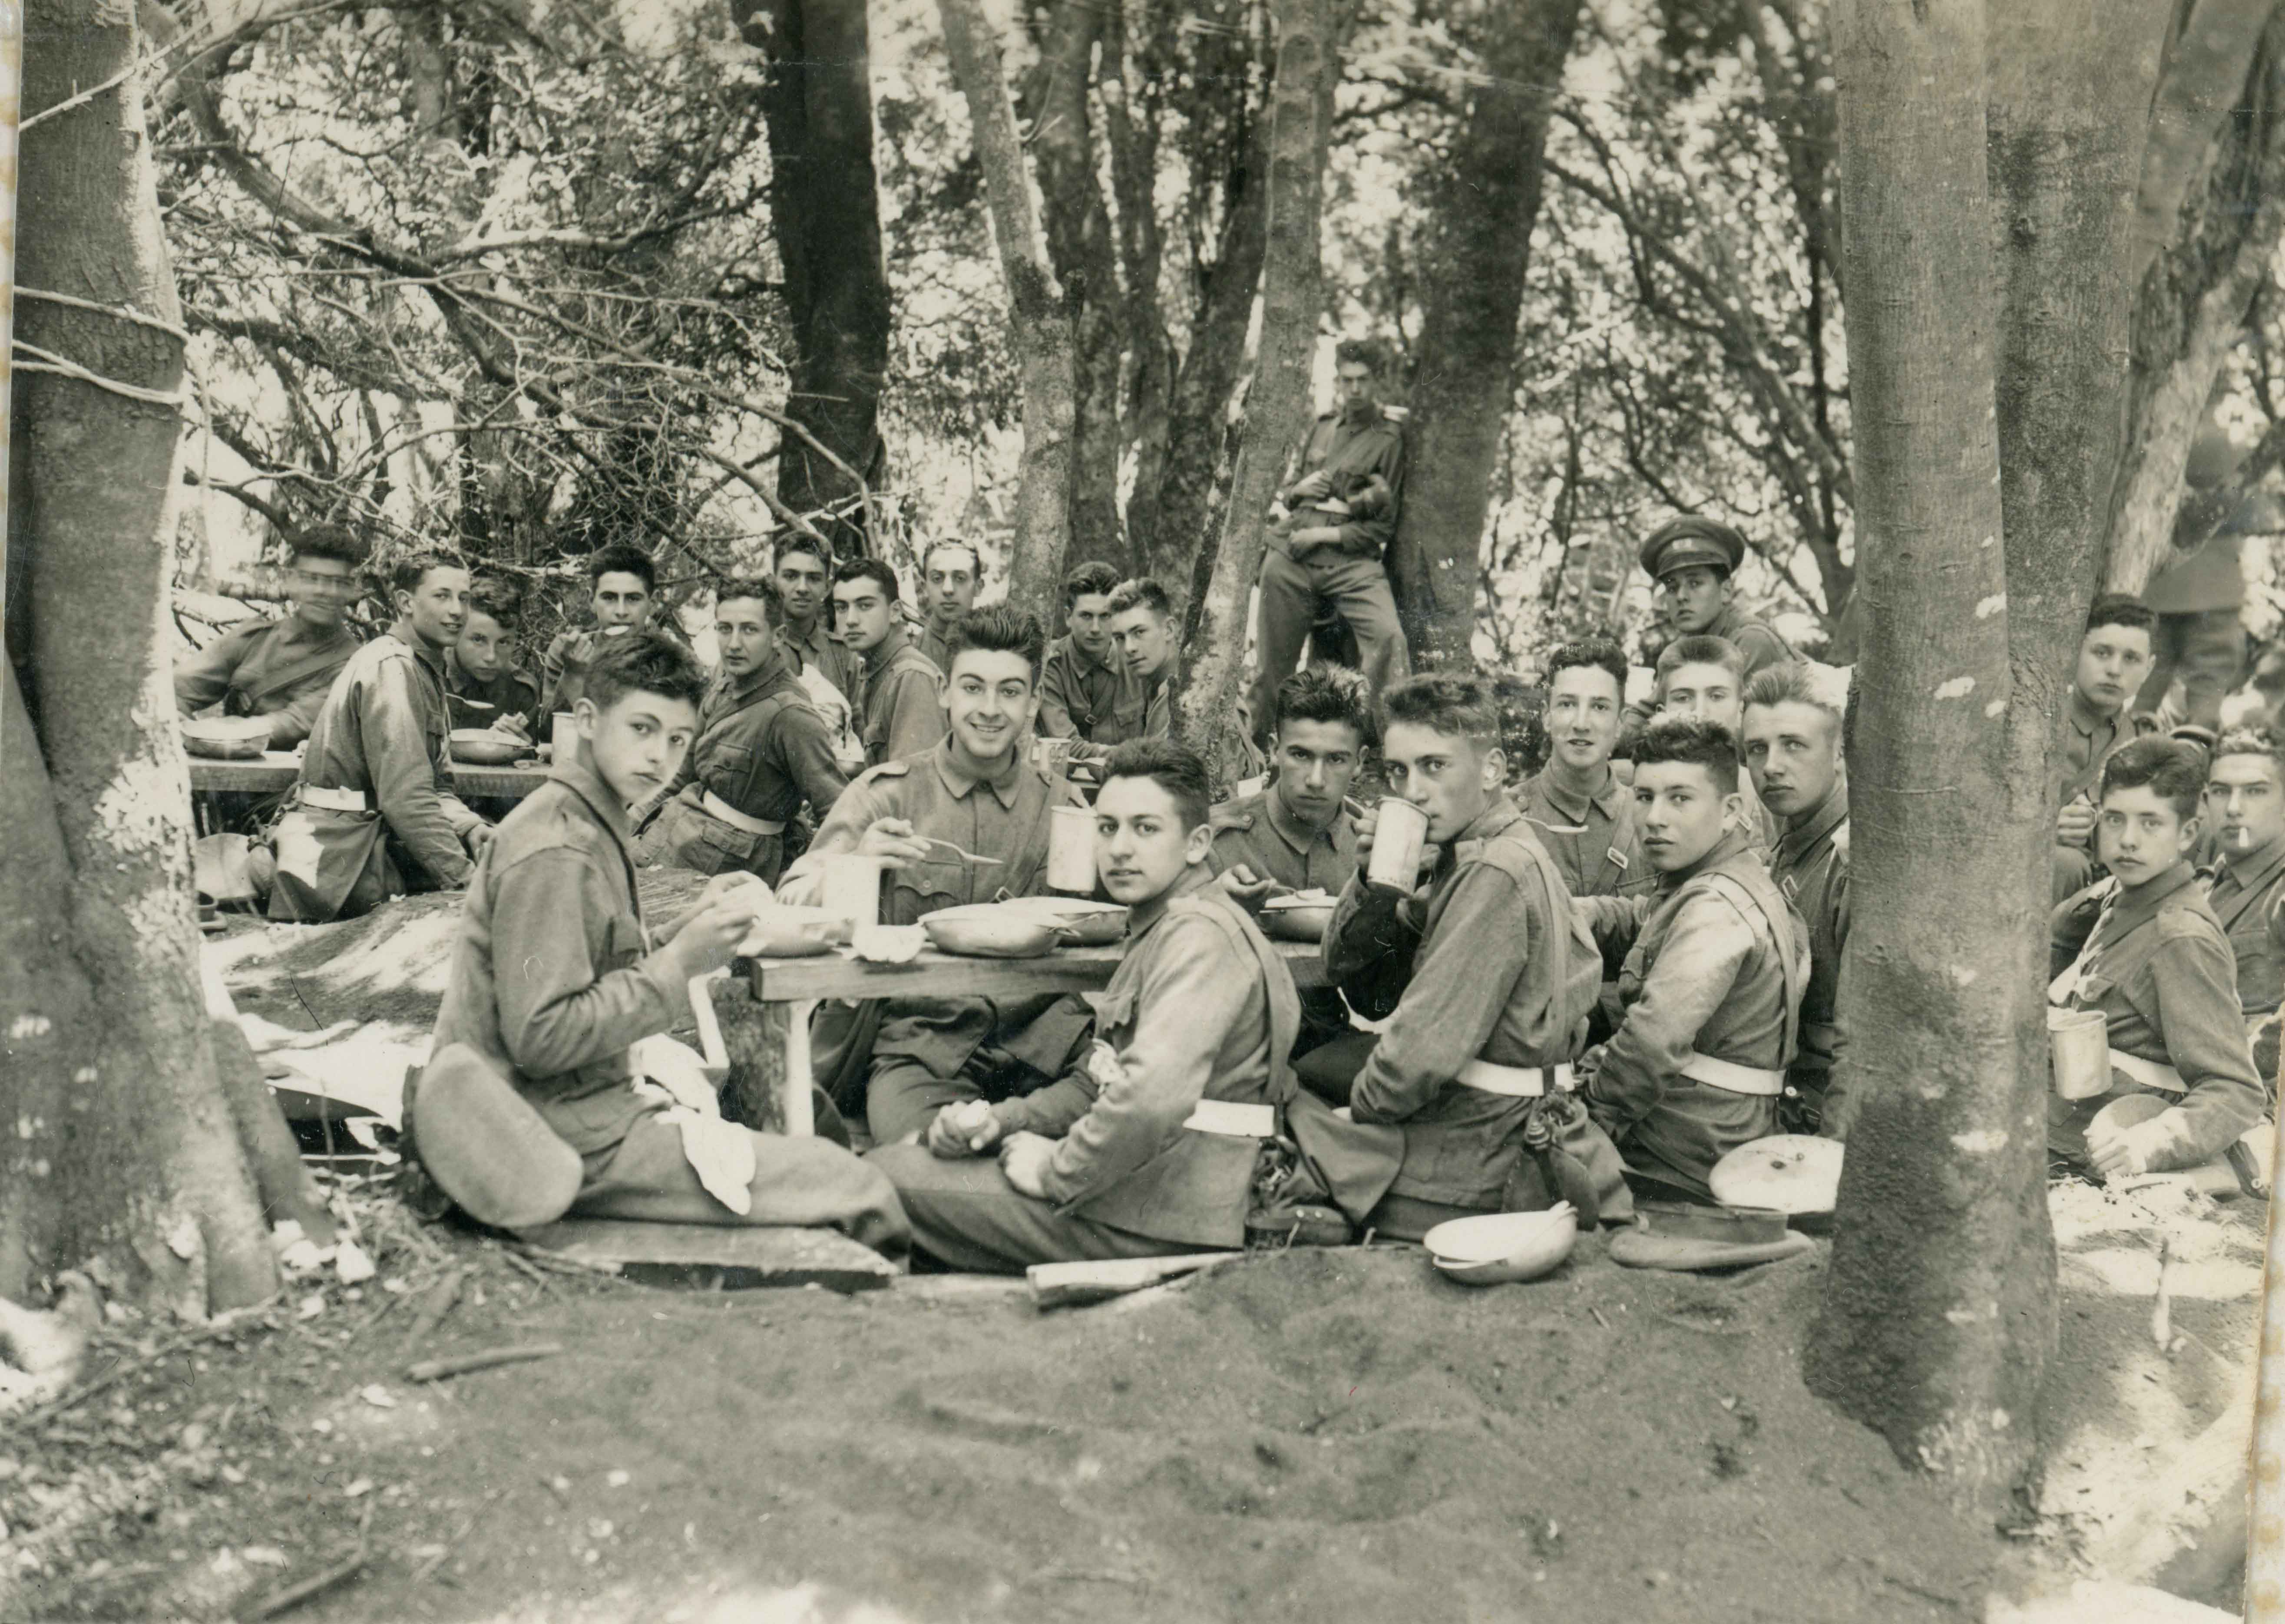 Enterreno - Fotos históricas de chile - fotos antiguas de Chile - Almuerzo de cadetes en 1943